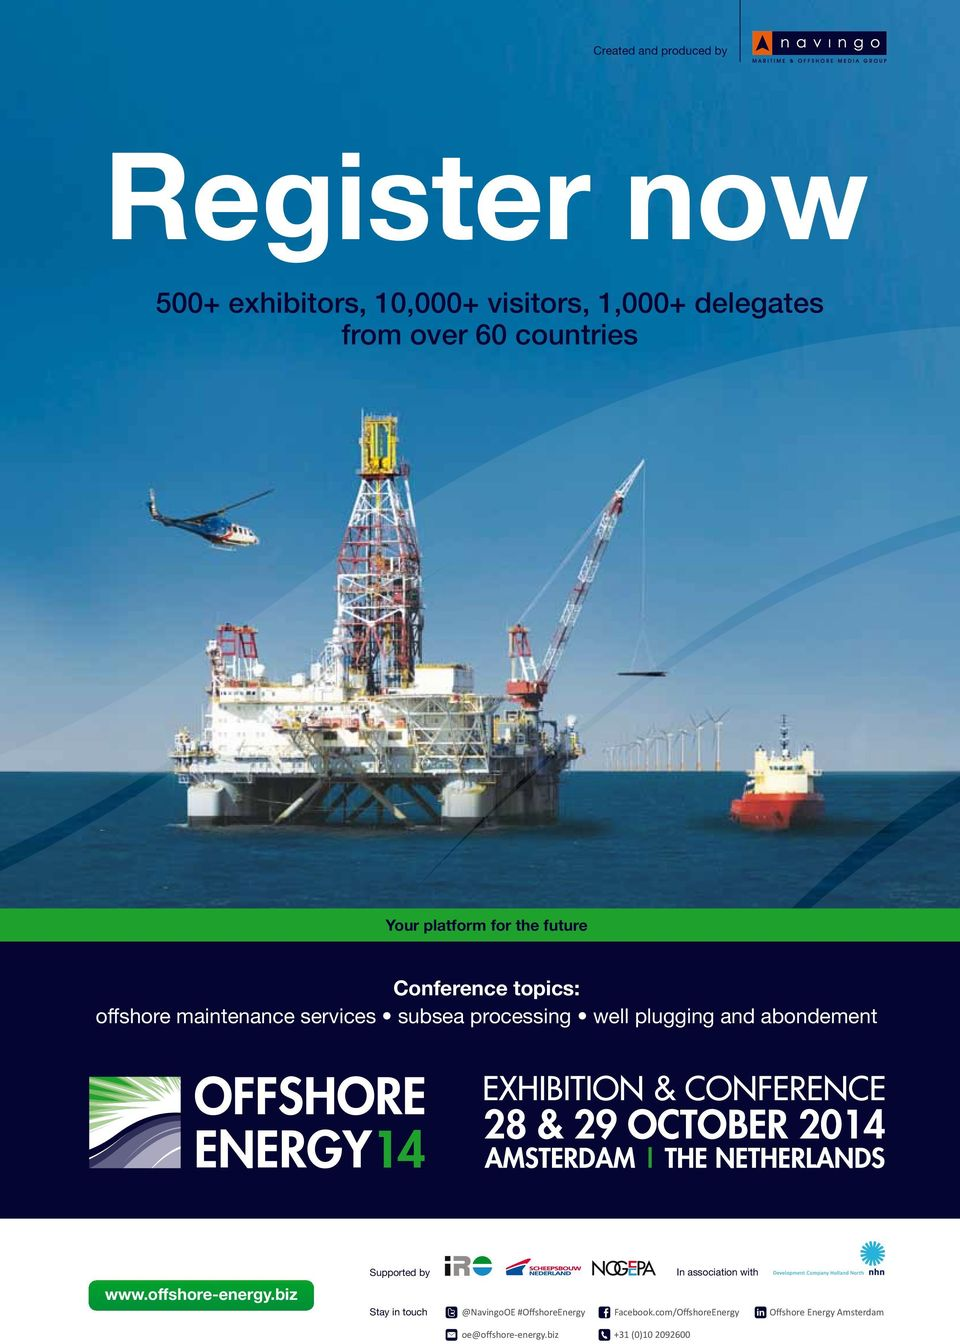 and abondement 28 & 29 OCTOBER 2014 www.offshore-energy.